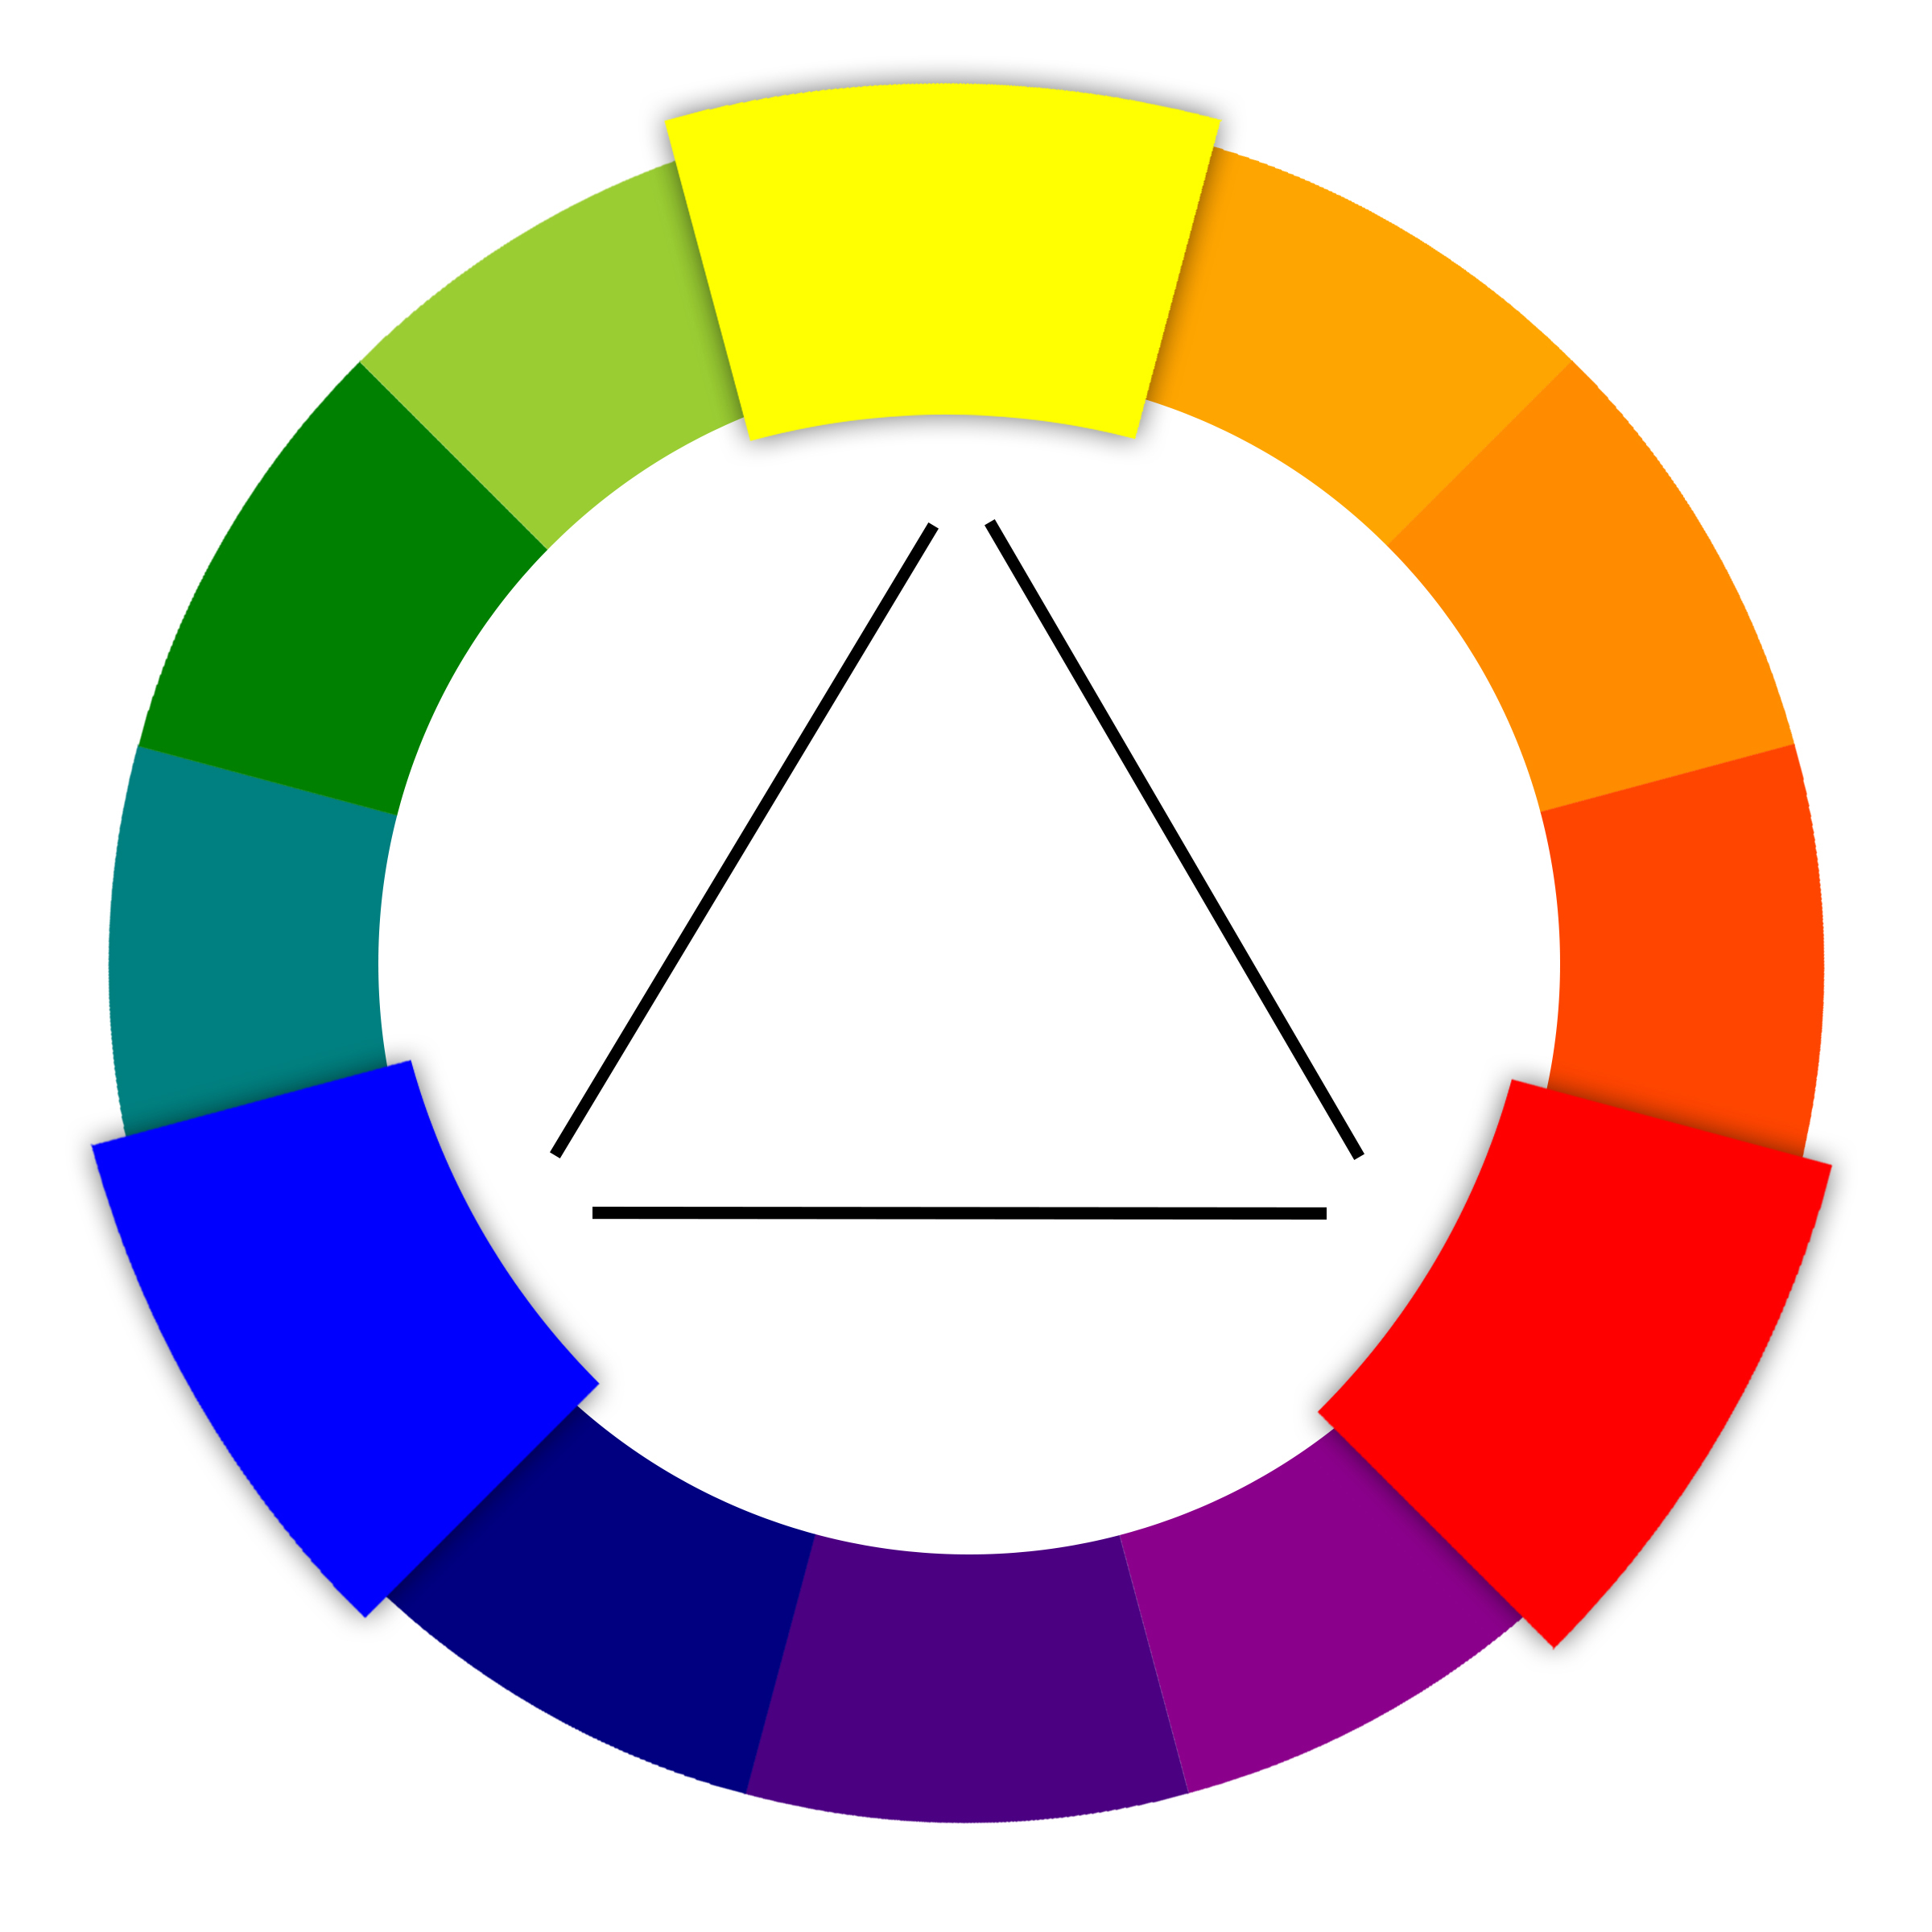 Triadic-Blue-Yellow-Red-Color-Wheel.jpg